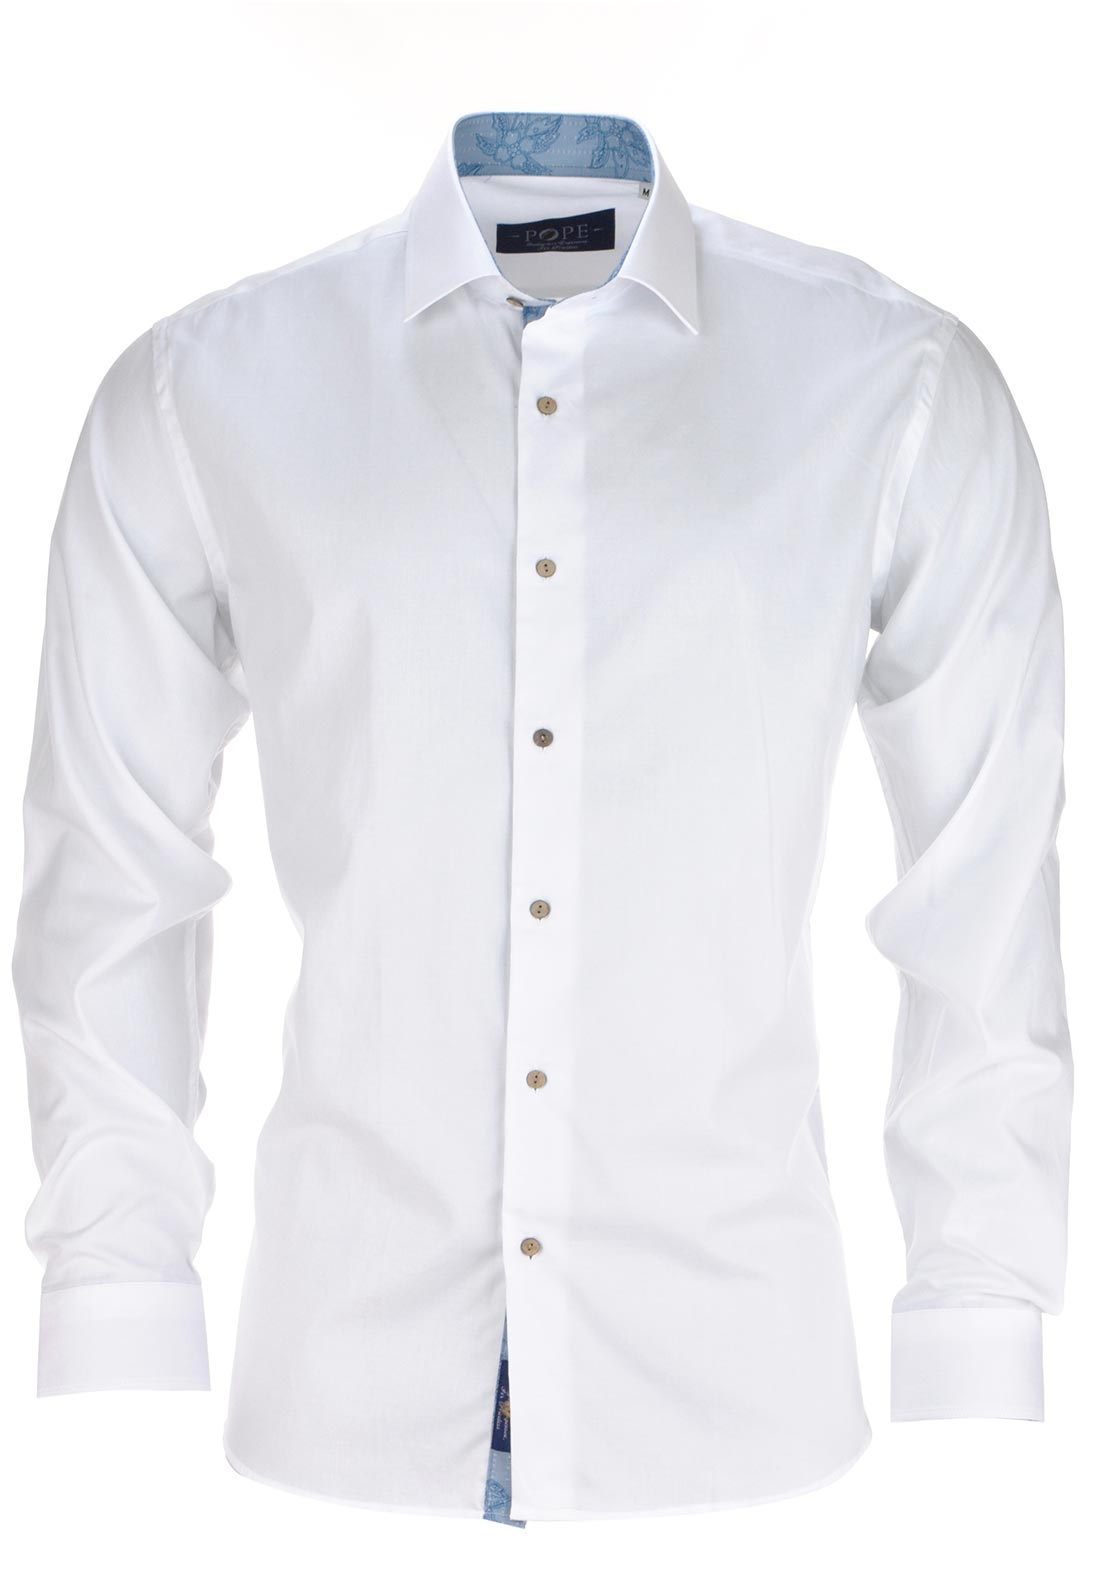 POPE Mens Royalty Long Sleeved Plain Shirt, White